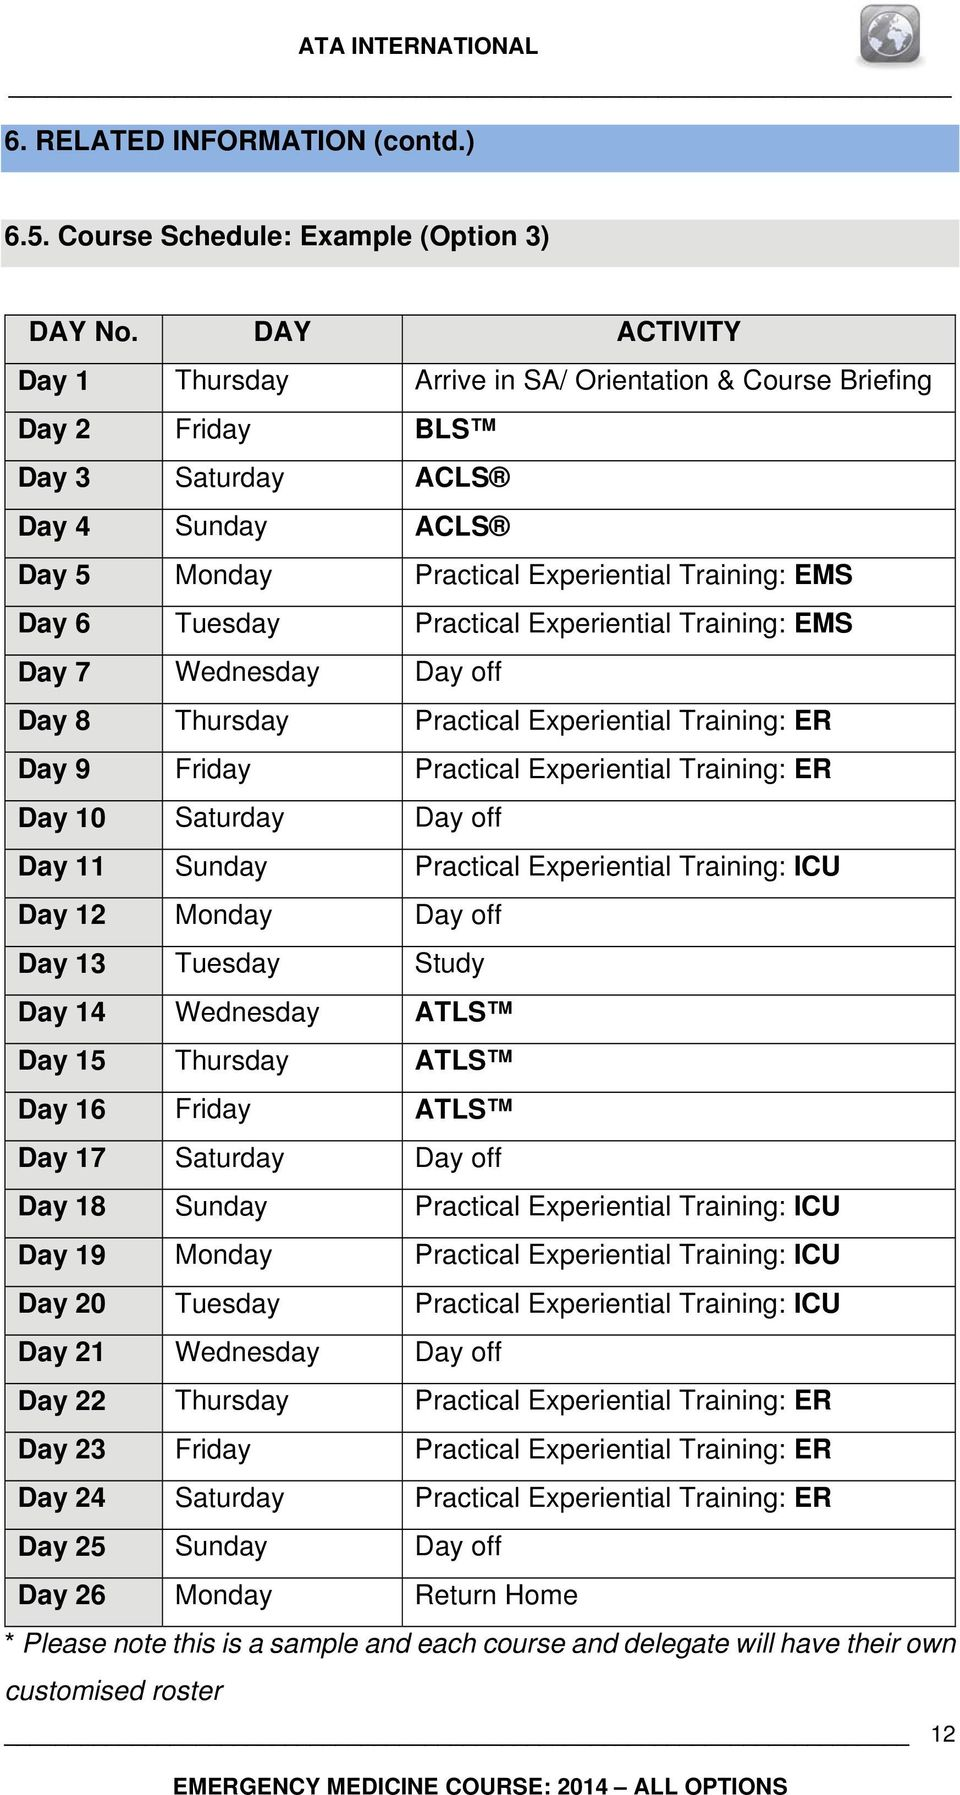 Practical Experiential Training: EMS Day 7 Wednesday Day off Day 8 Thursday Practical Experiential Training: ER Day 9 Friday Practical Experiential Training: ER Day 10 Saturday Day off Day 11 Sunday